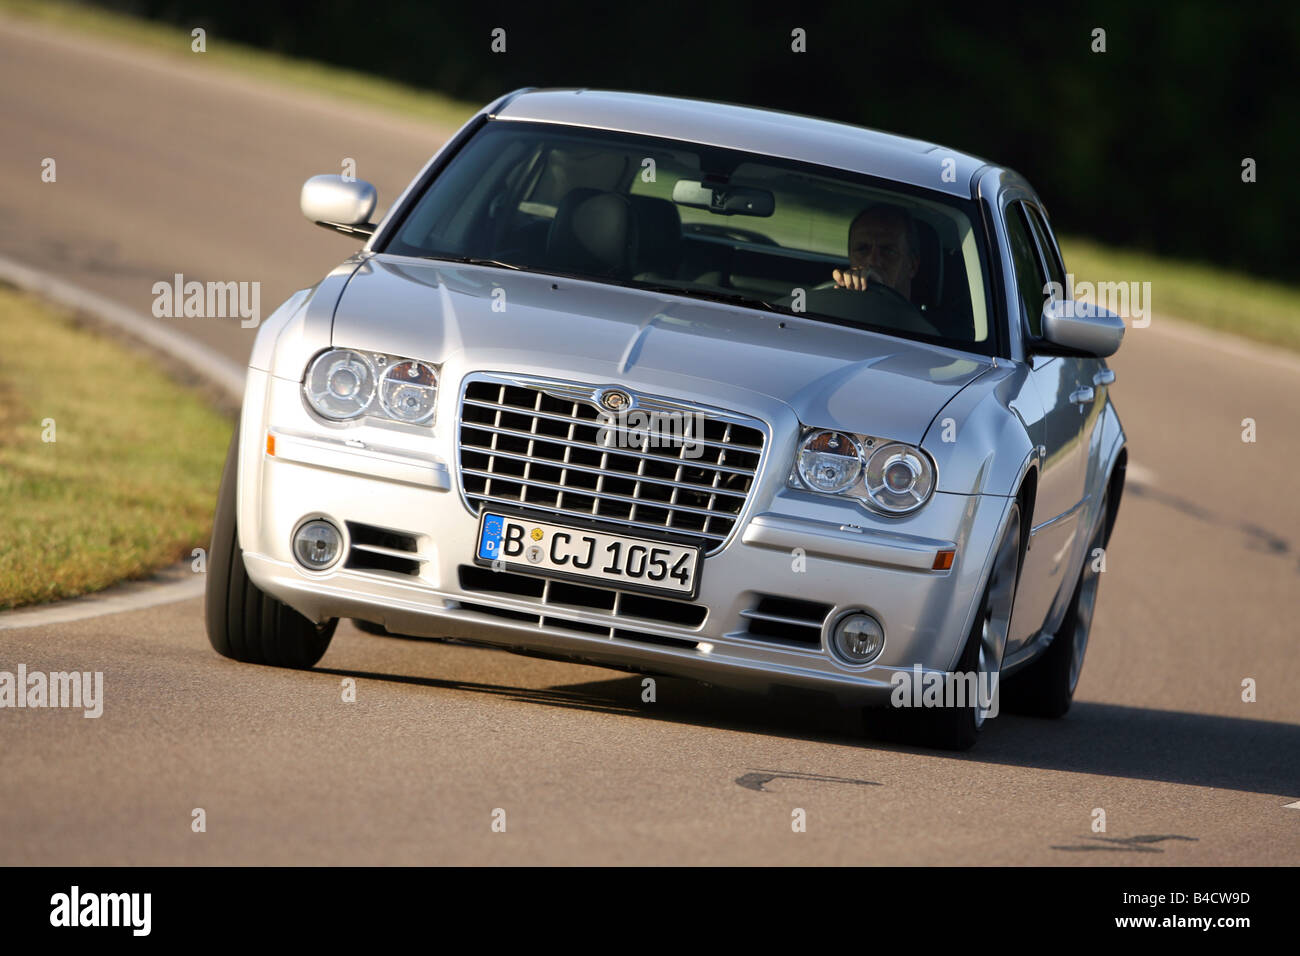 chrysler 300 2006 silver. chrysler 300c touring srt8 model year 2006 silver driving diagonal from the front frontal view country road 300